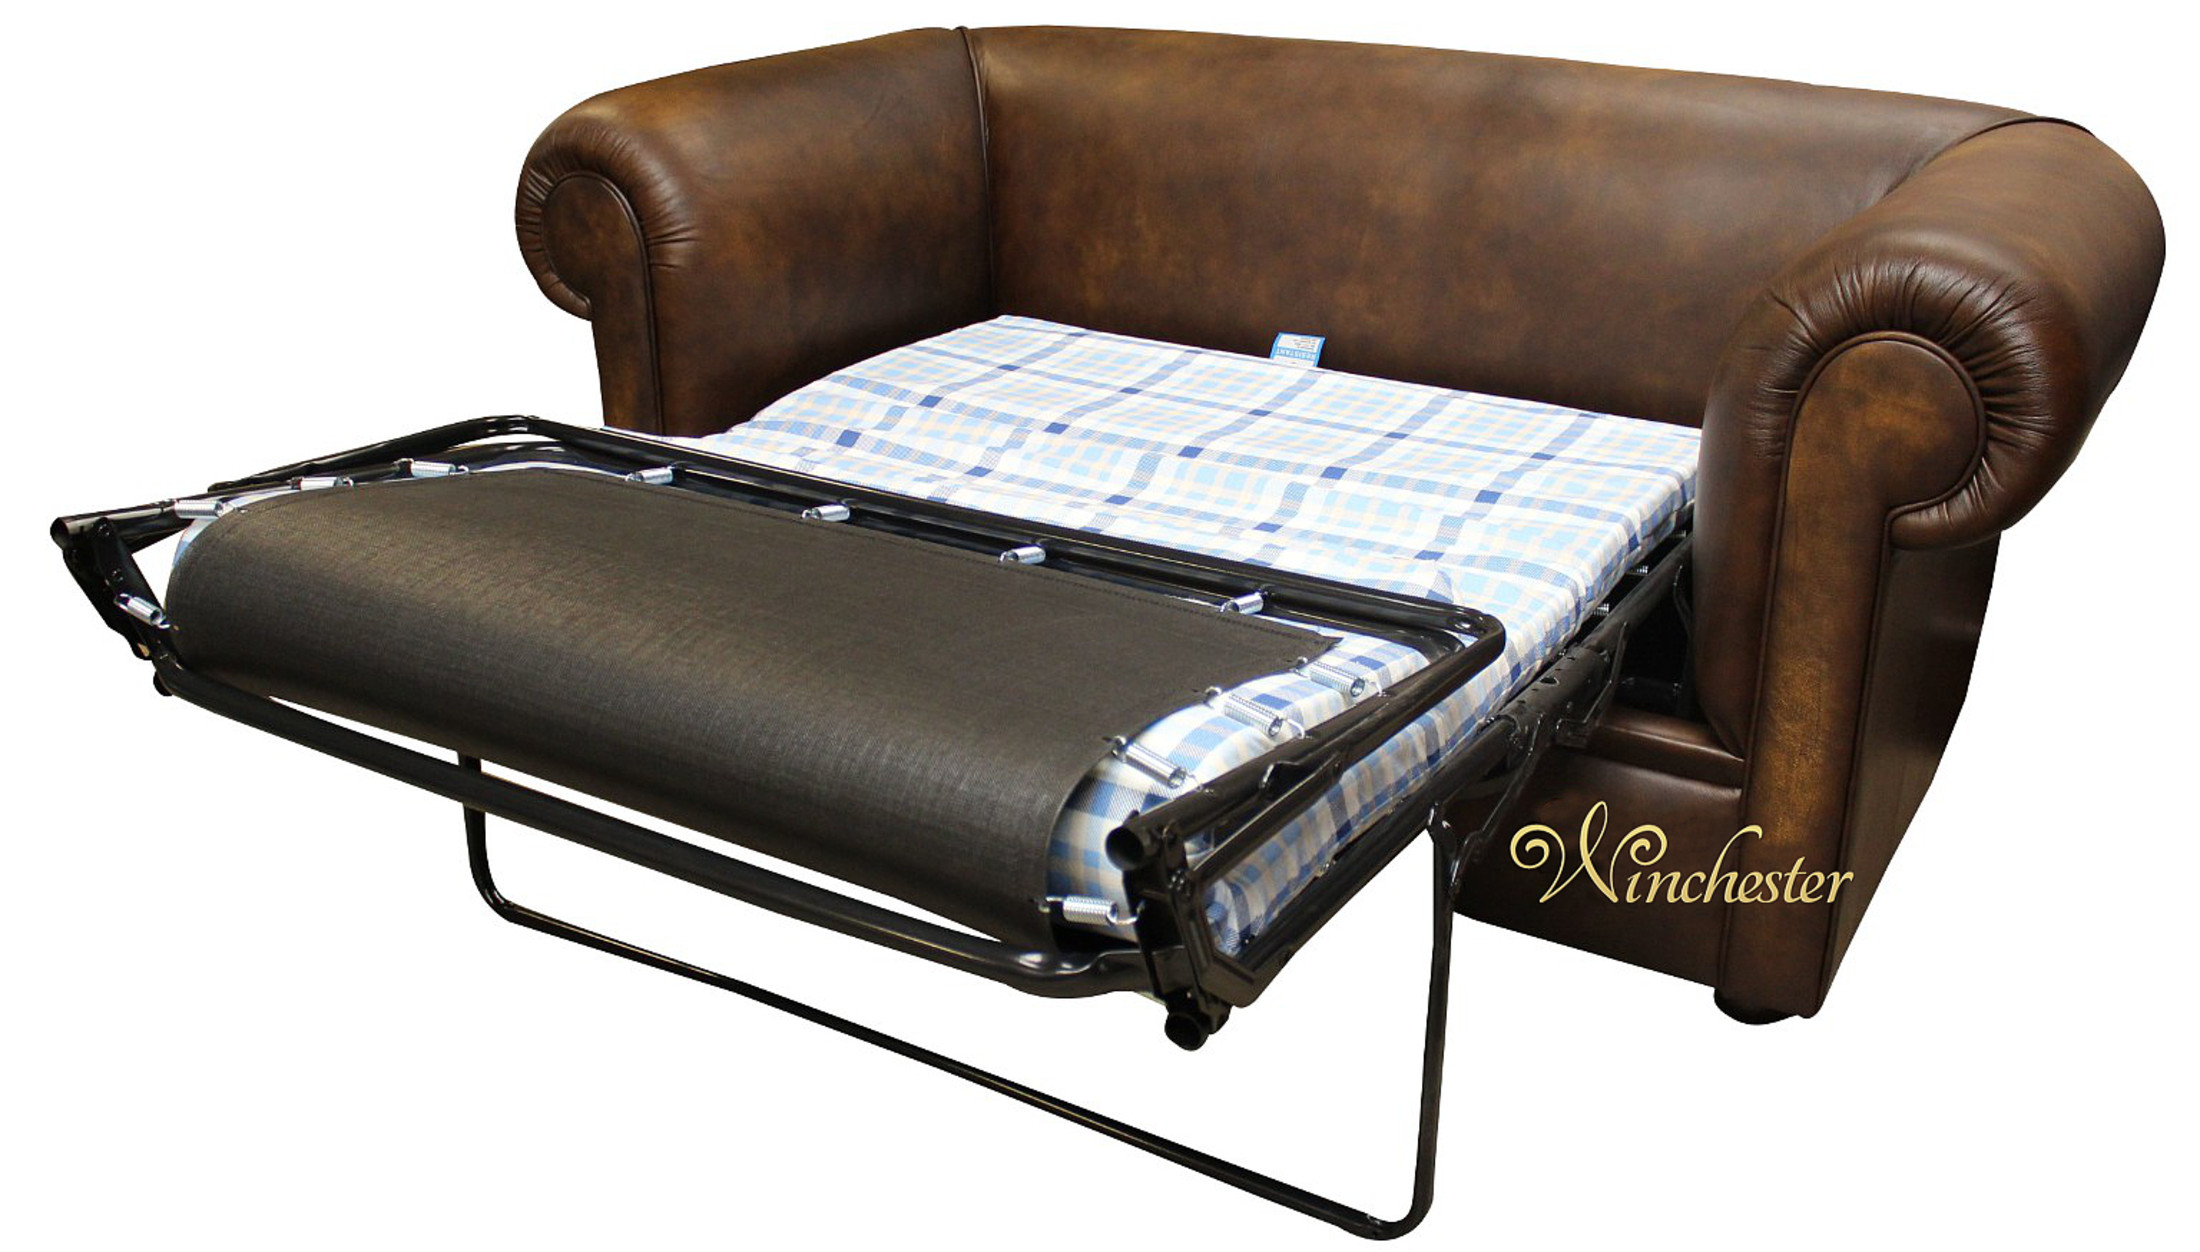 Chesterfield 1930 S 2 Seater Sofa Bed Antique Gold Leather